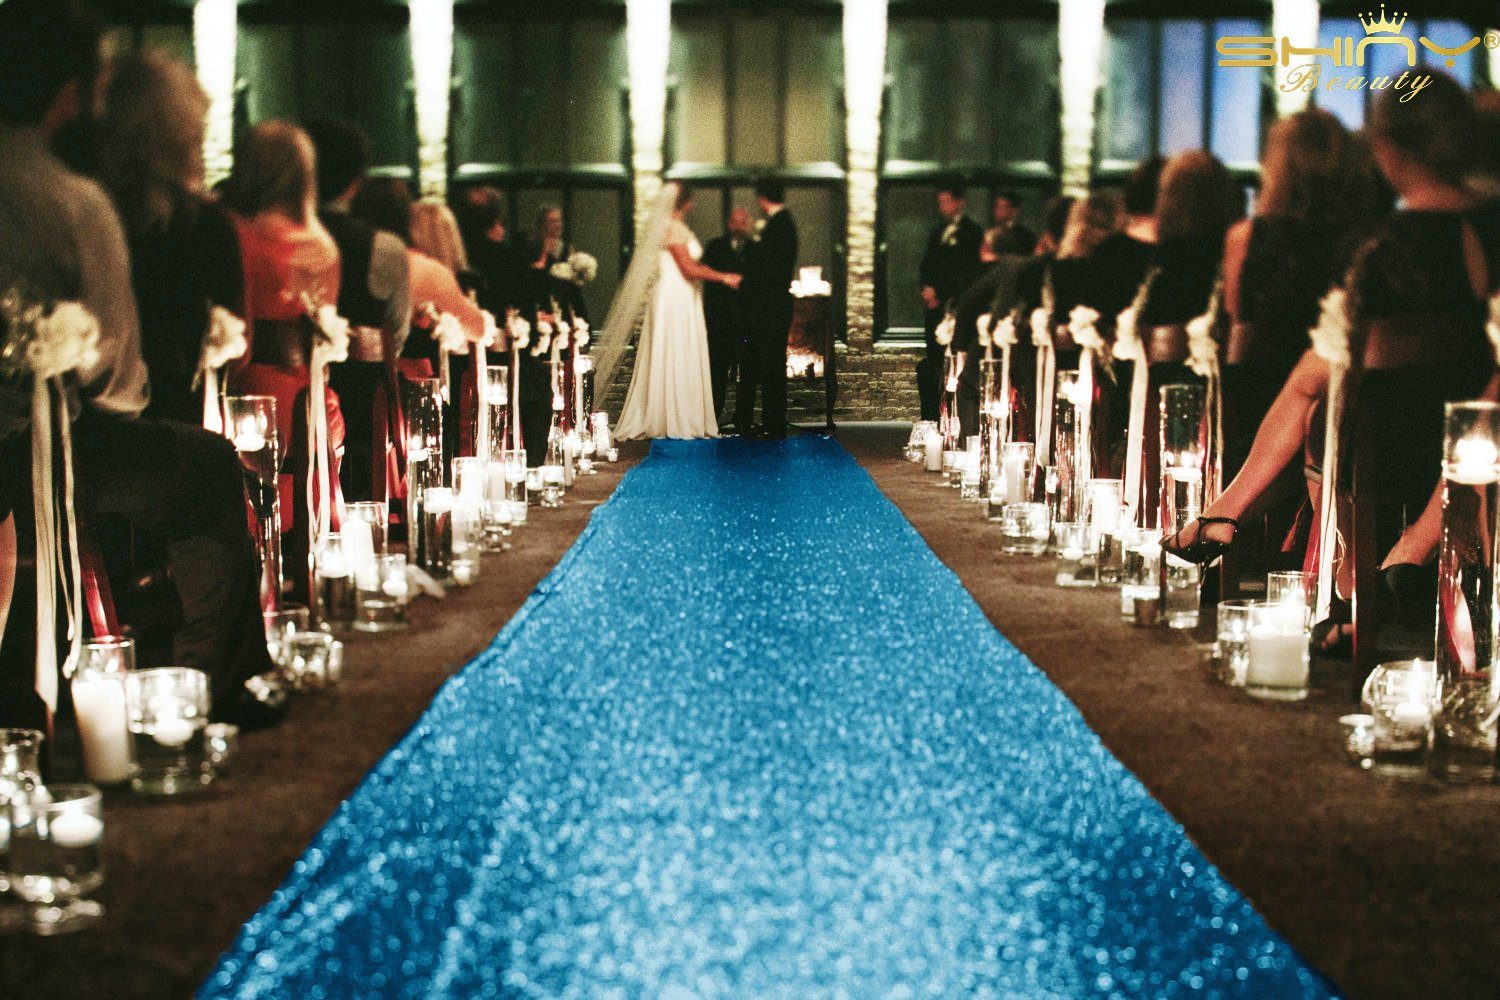 4FTx50FT-Aisle Runner Carpet-Aqua Blue-Glitz Sequin Aisle Runner Lace For Wedding Decoration(48Inch by 50FT Long) (Aqua Blue) by ShinyBeauty